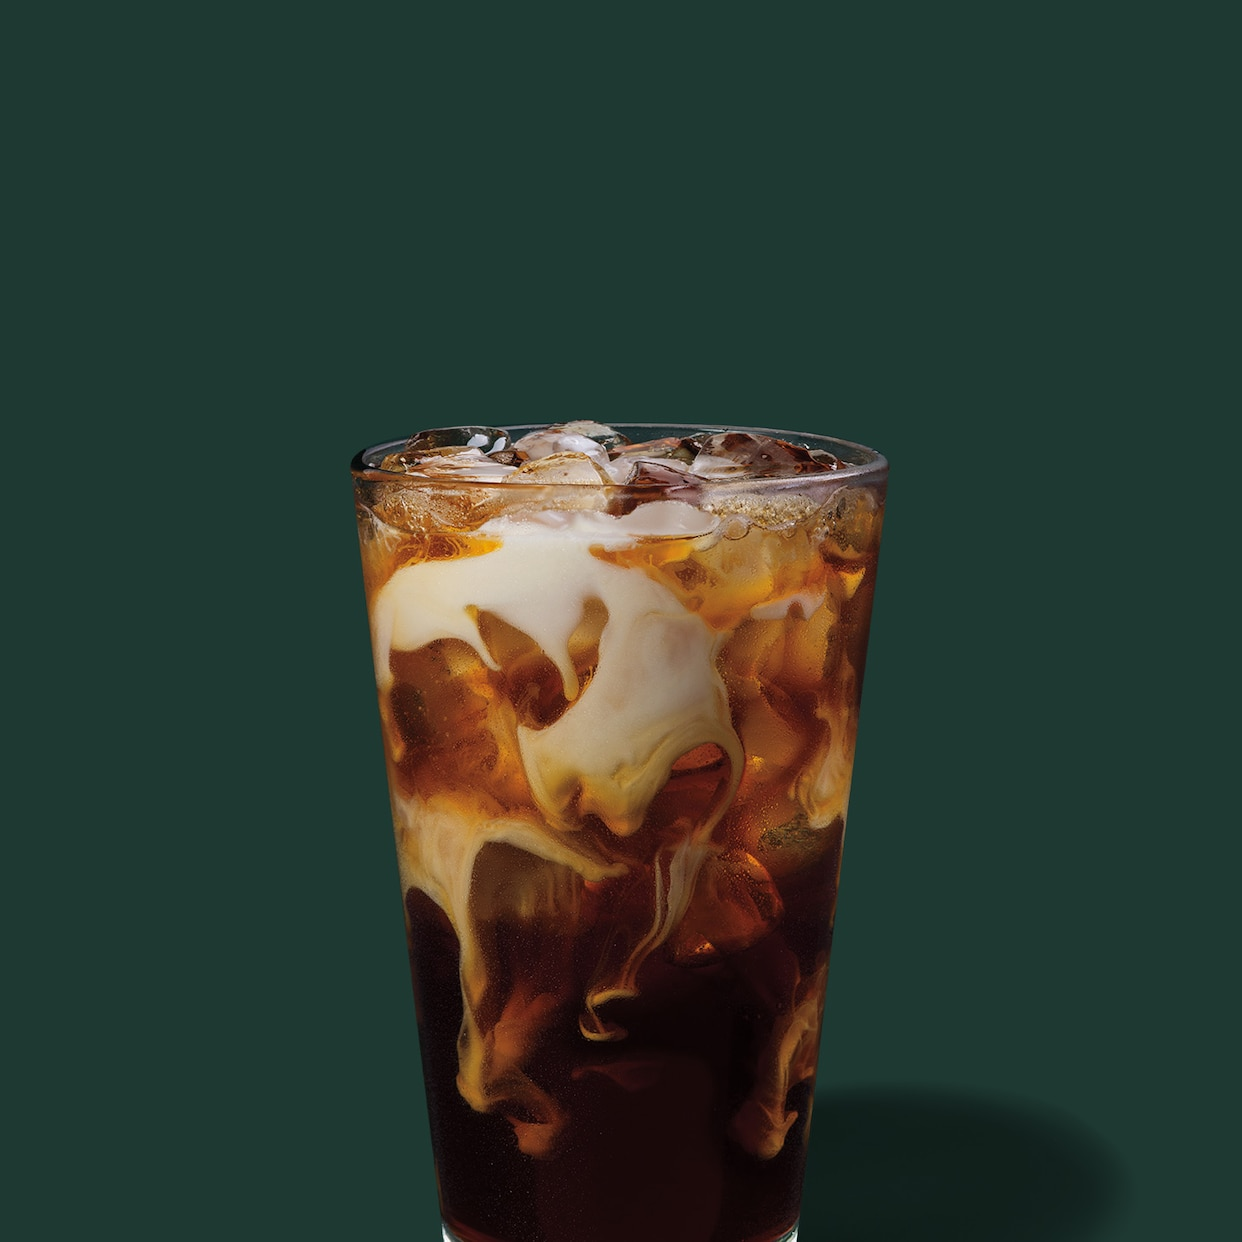 Black Iced Coffee Calories Starbucks